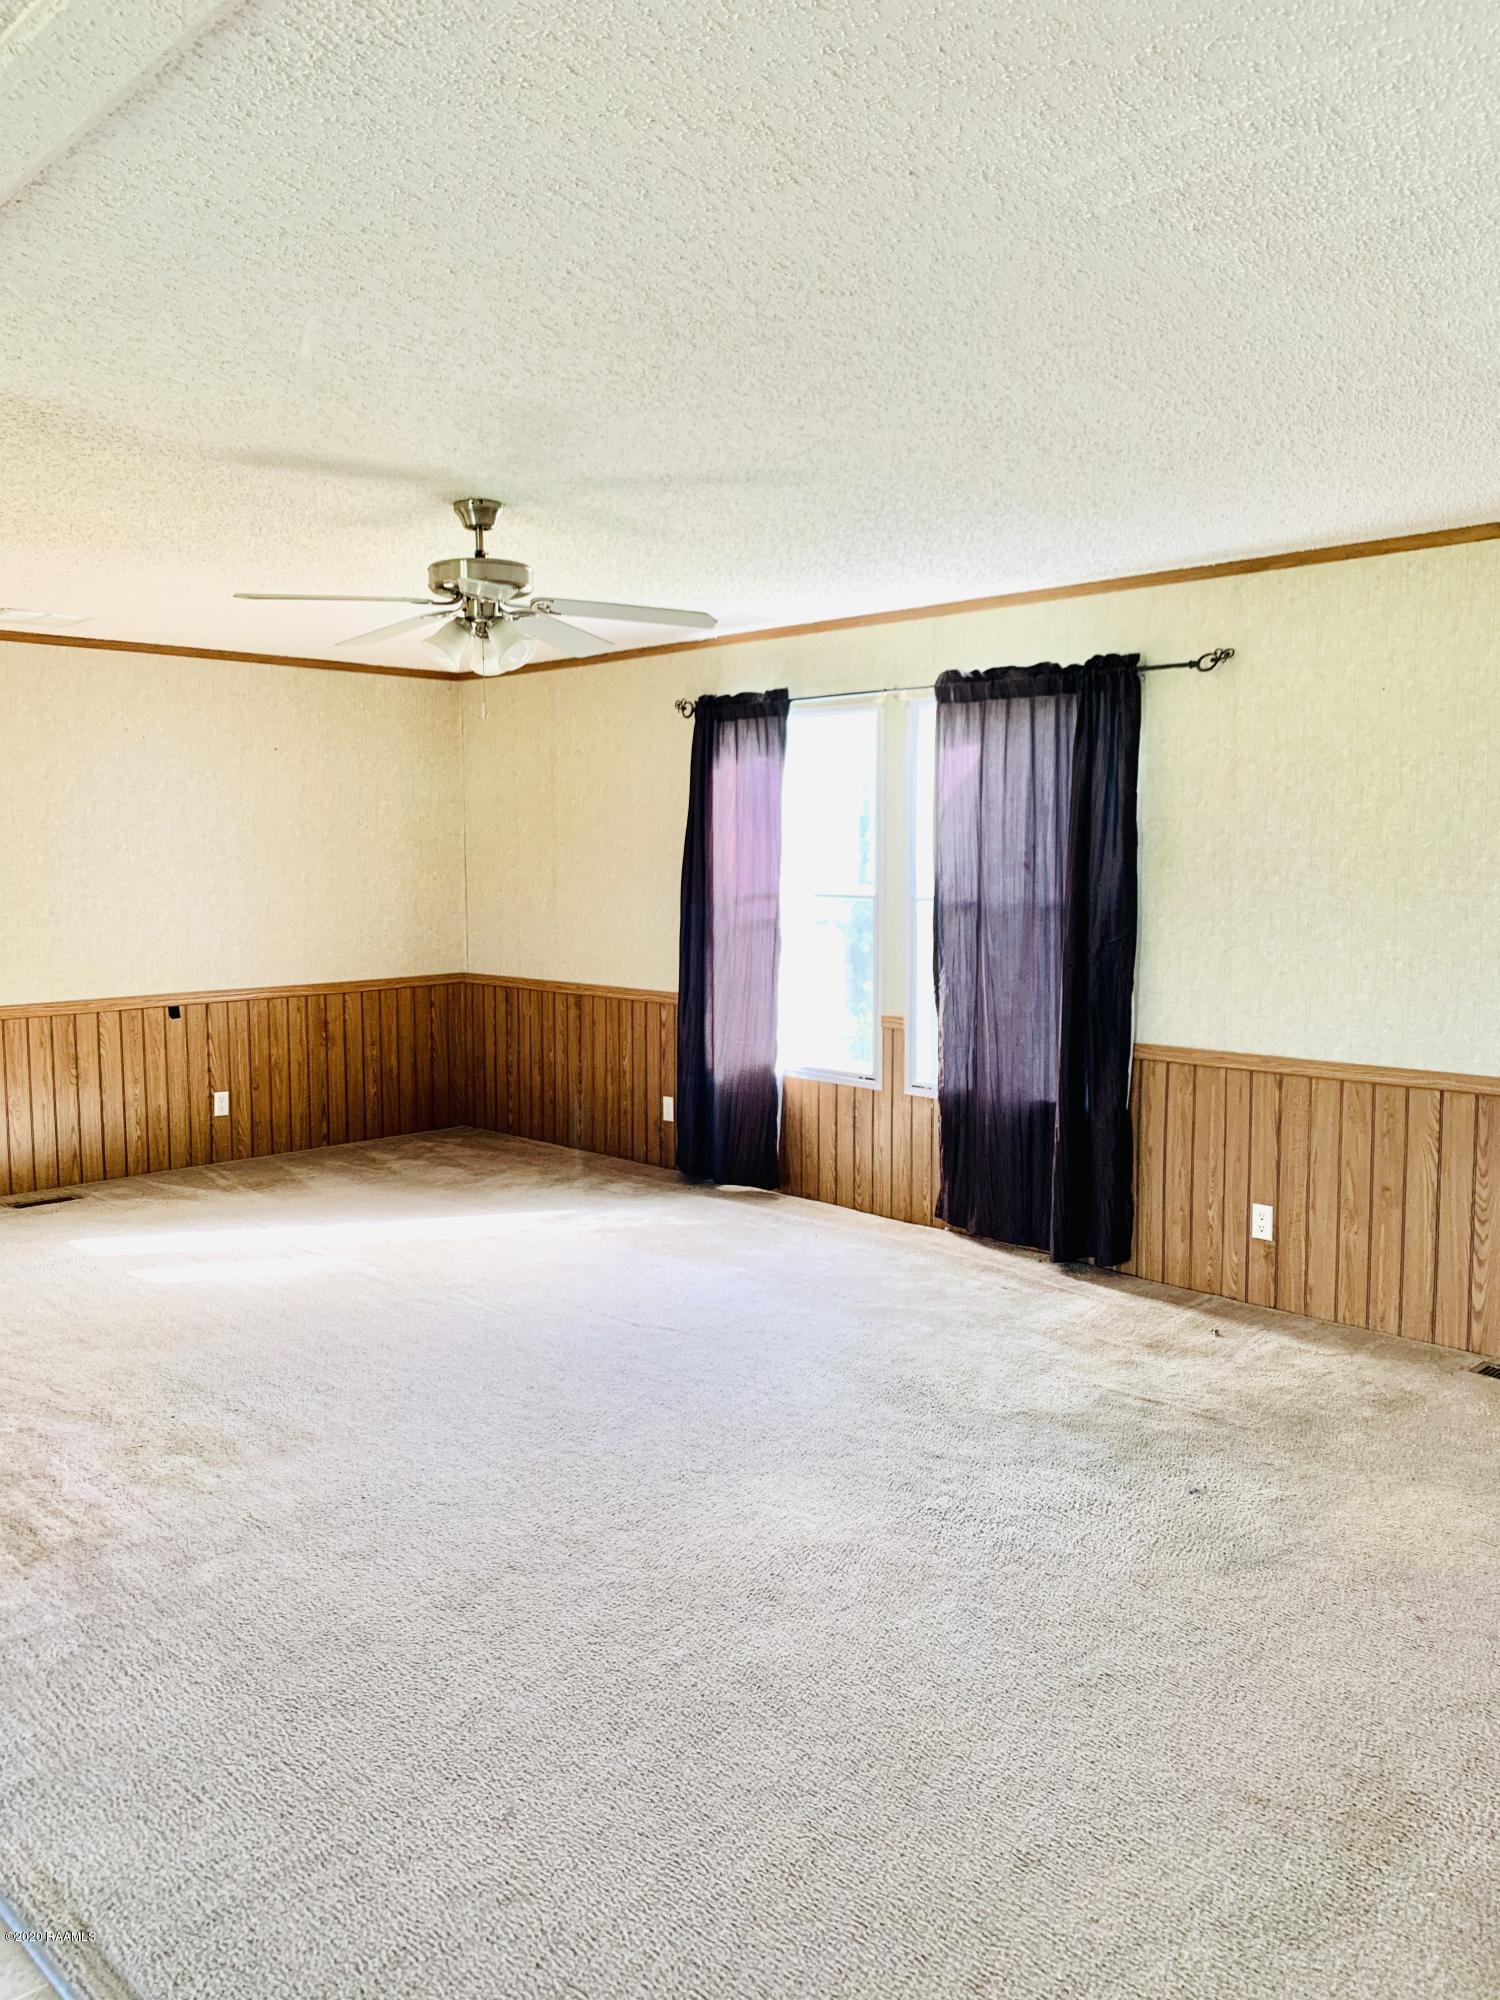 2132 Church Road, Opelousas, LA 70570 Photo #14